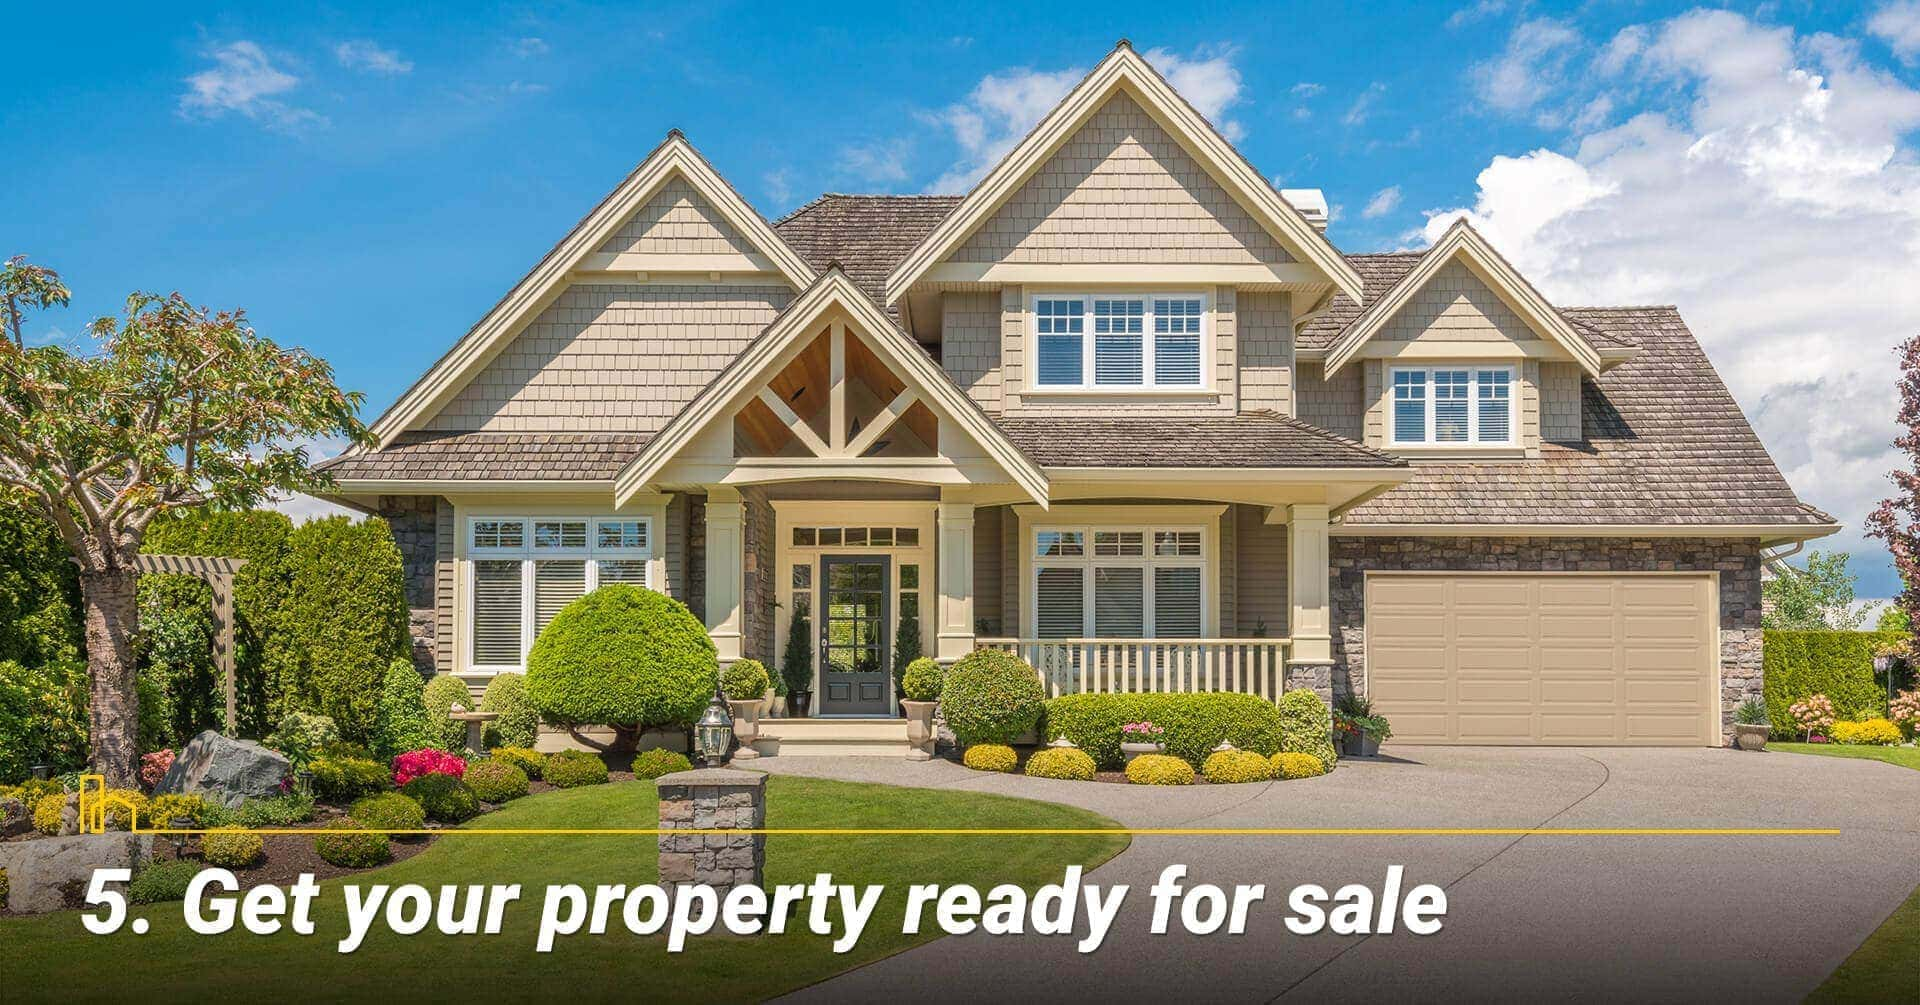 Get your property ready for sale, prepare your home well for listing